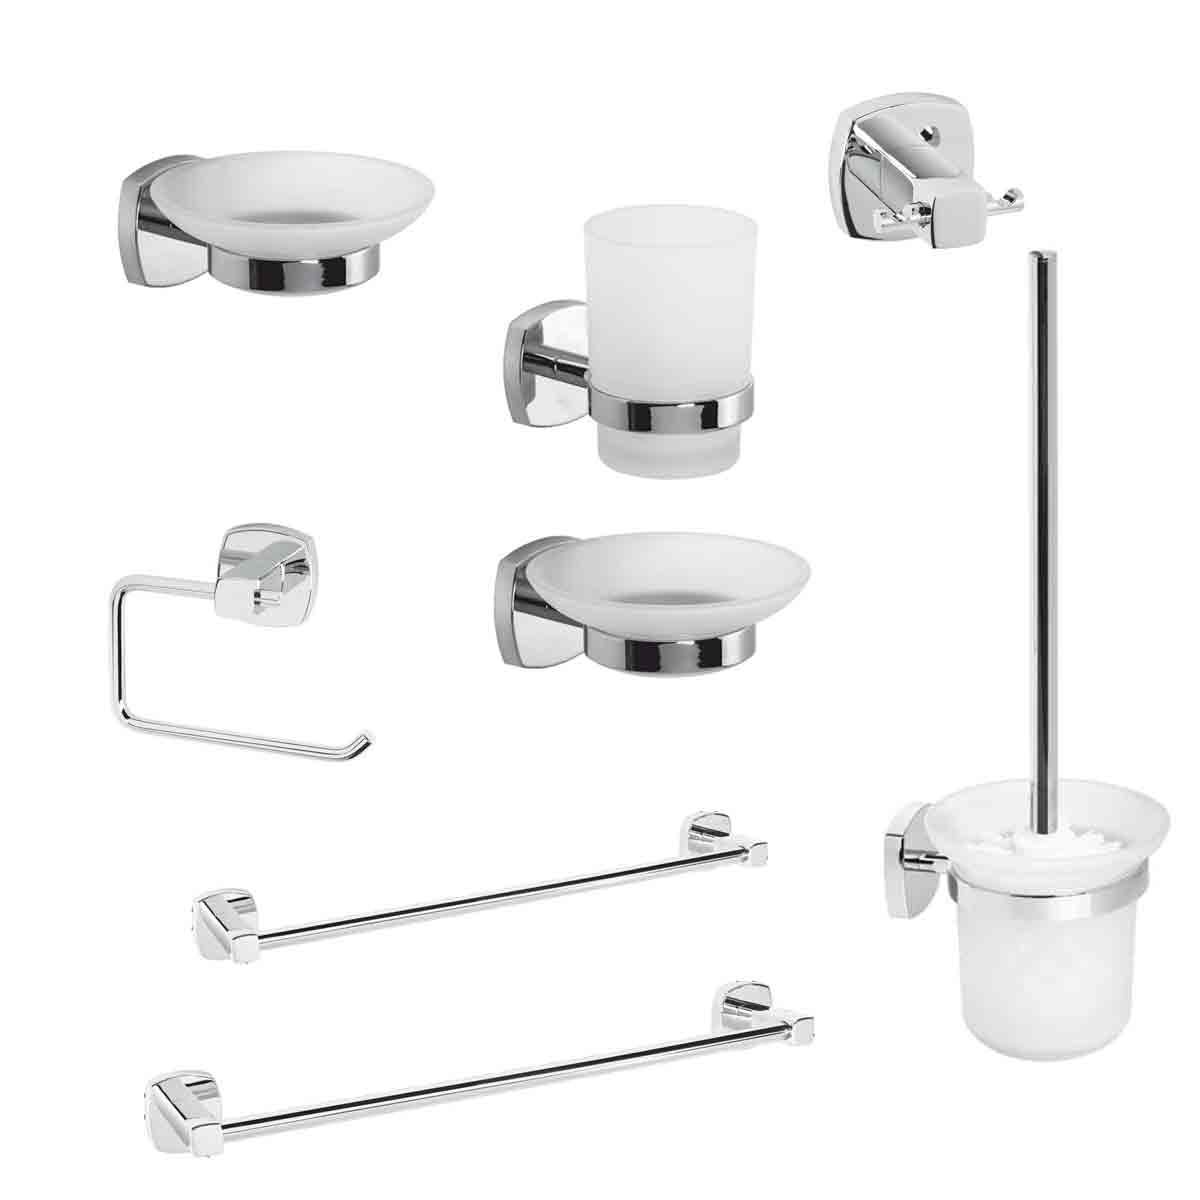 Bathroom accessories kit Q-line 8-pieces Metaform